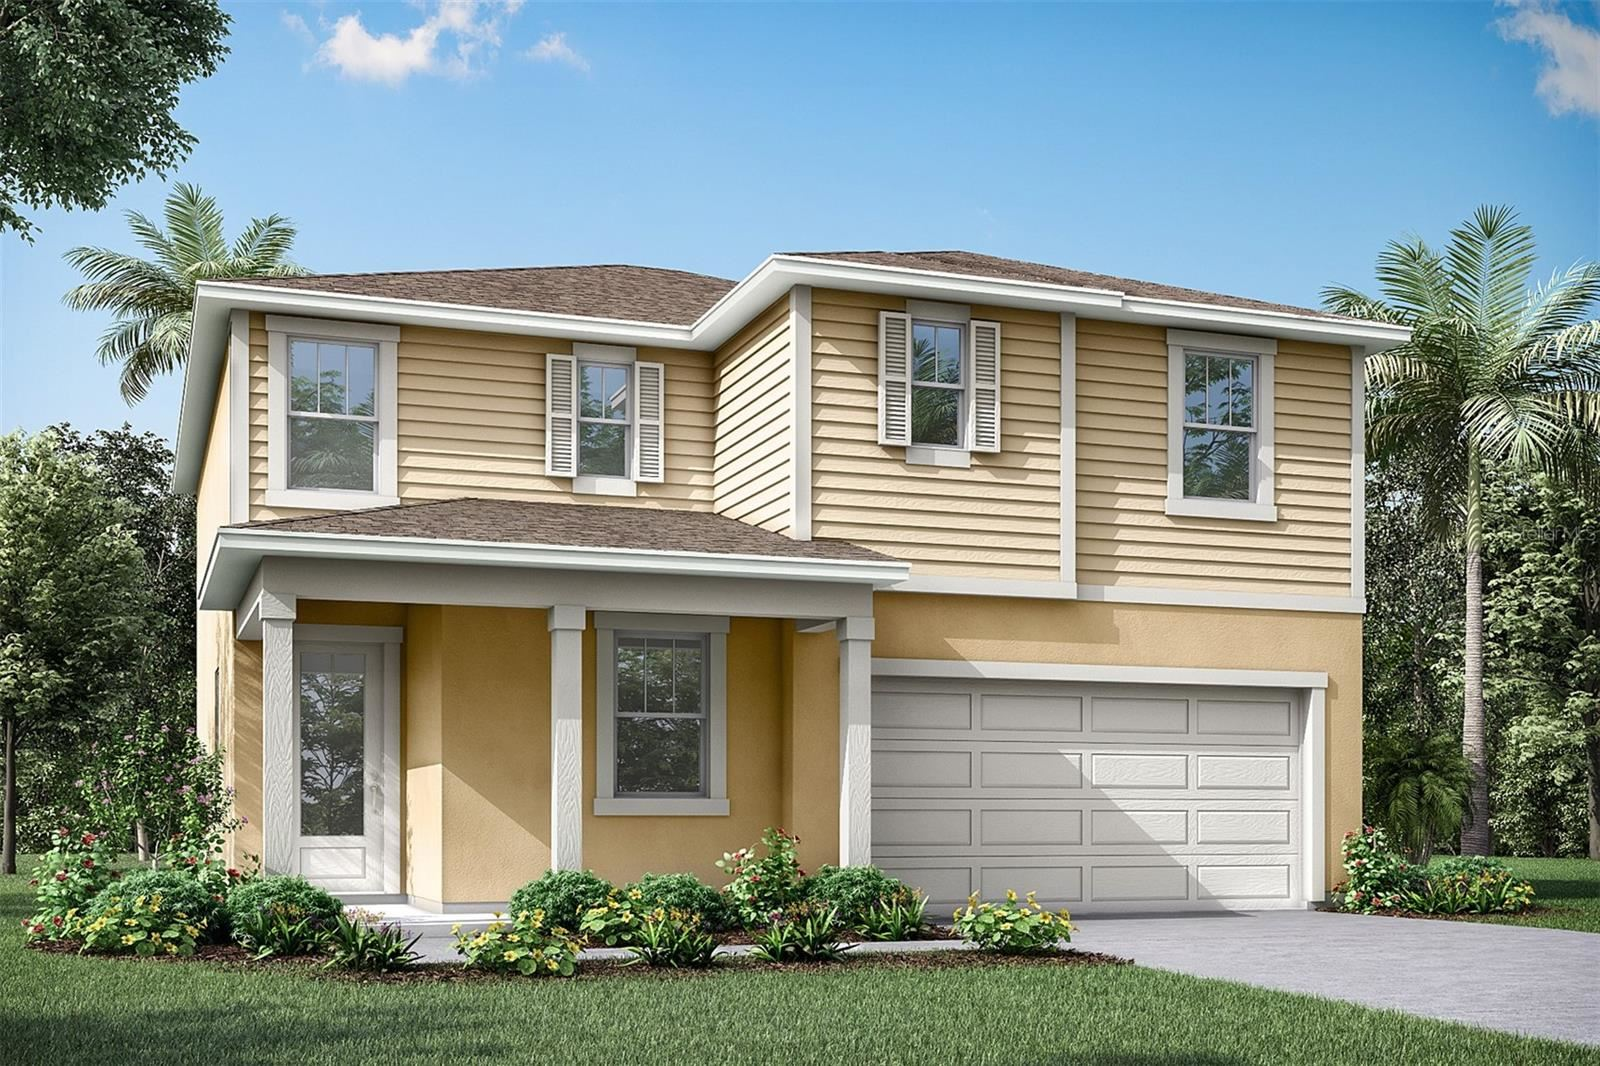 2984 AMBERSWEET PLACE #Lot 579, Clermont, FL 34711 - #: O5964623